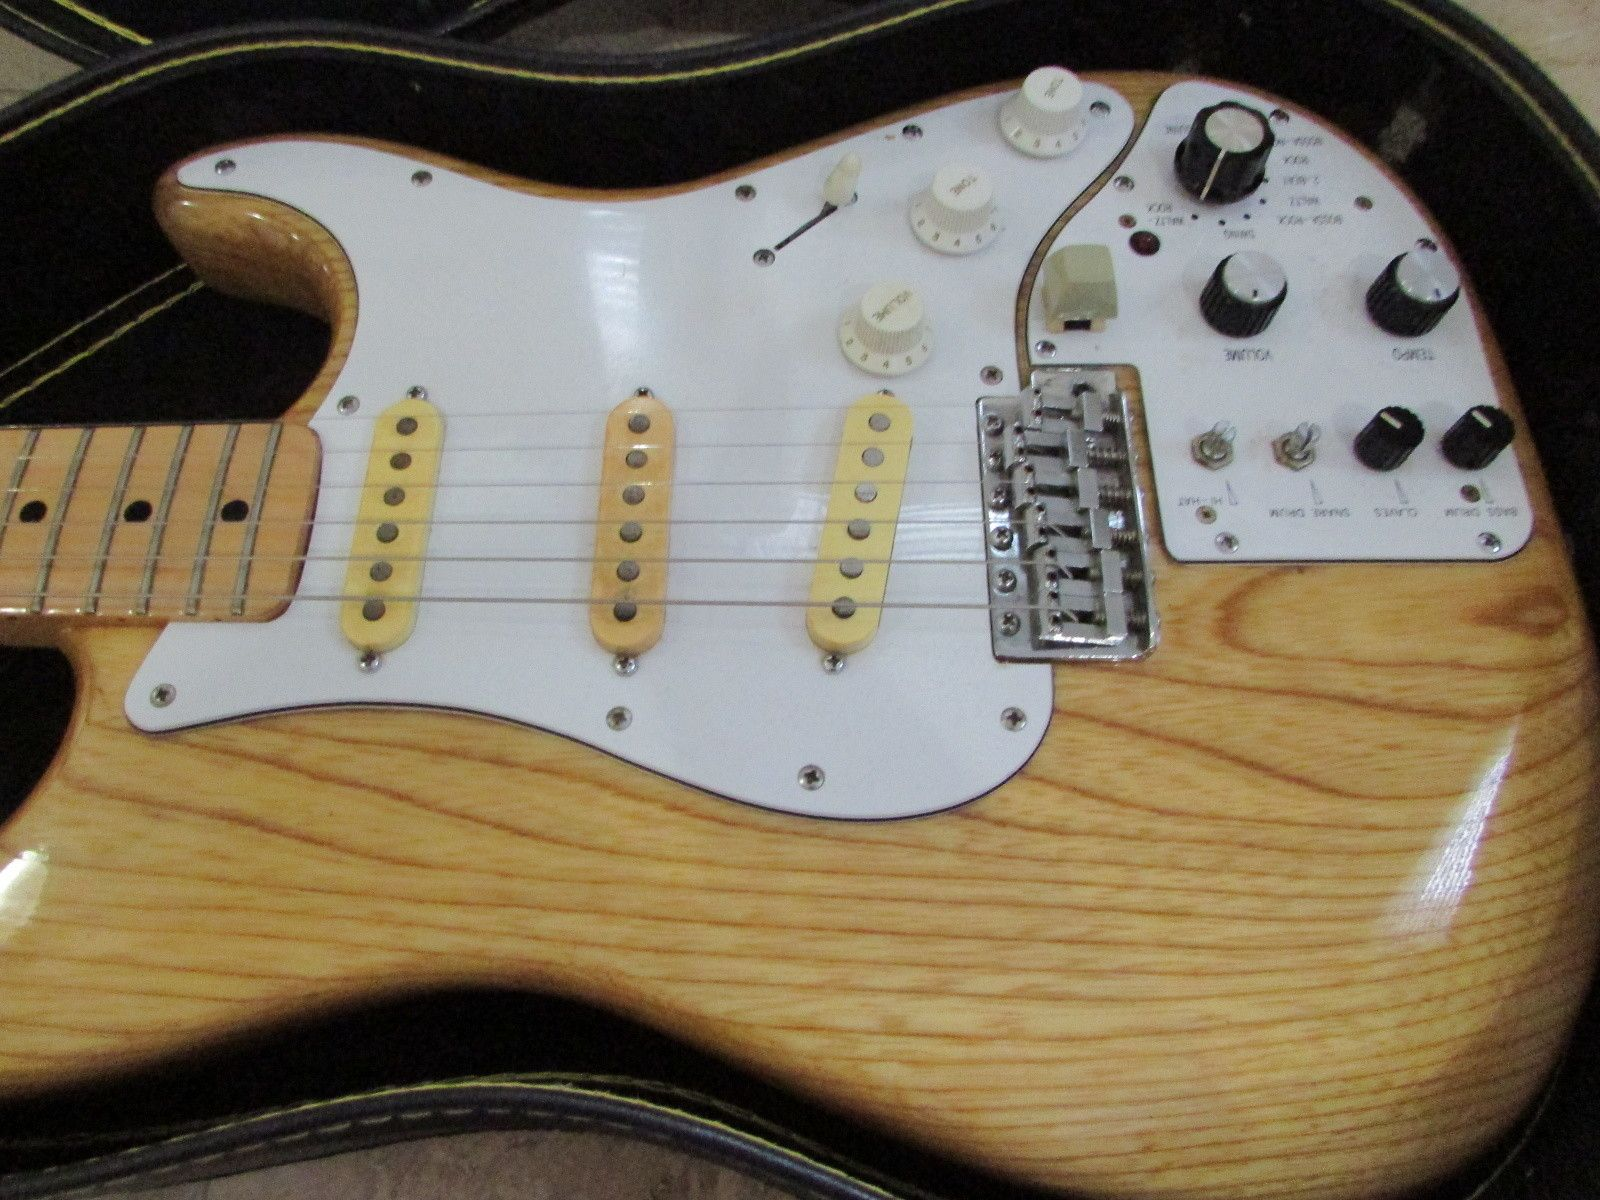 1987 Fresher Straighter Protean with built in drum machine